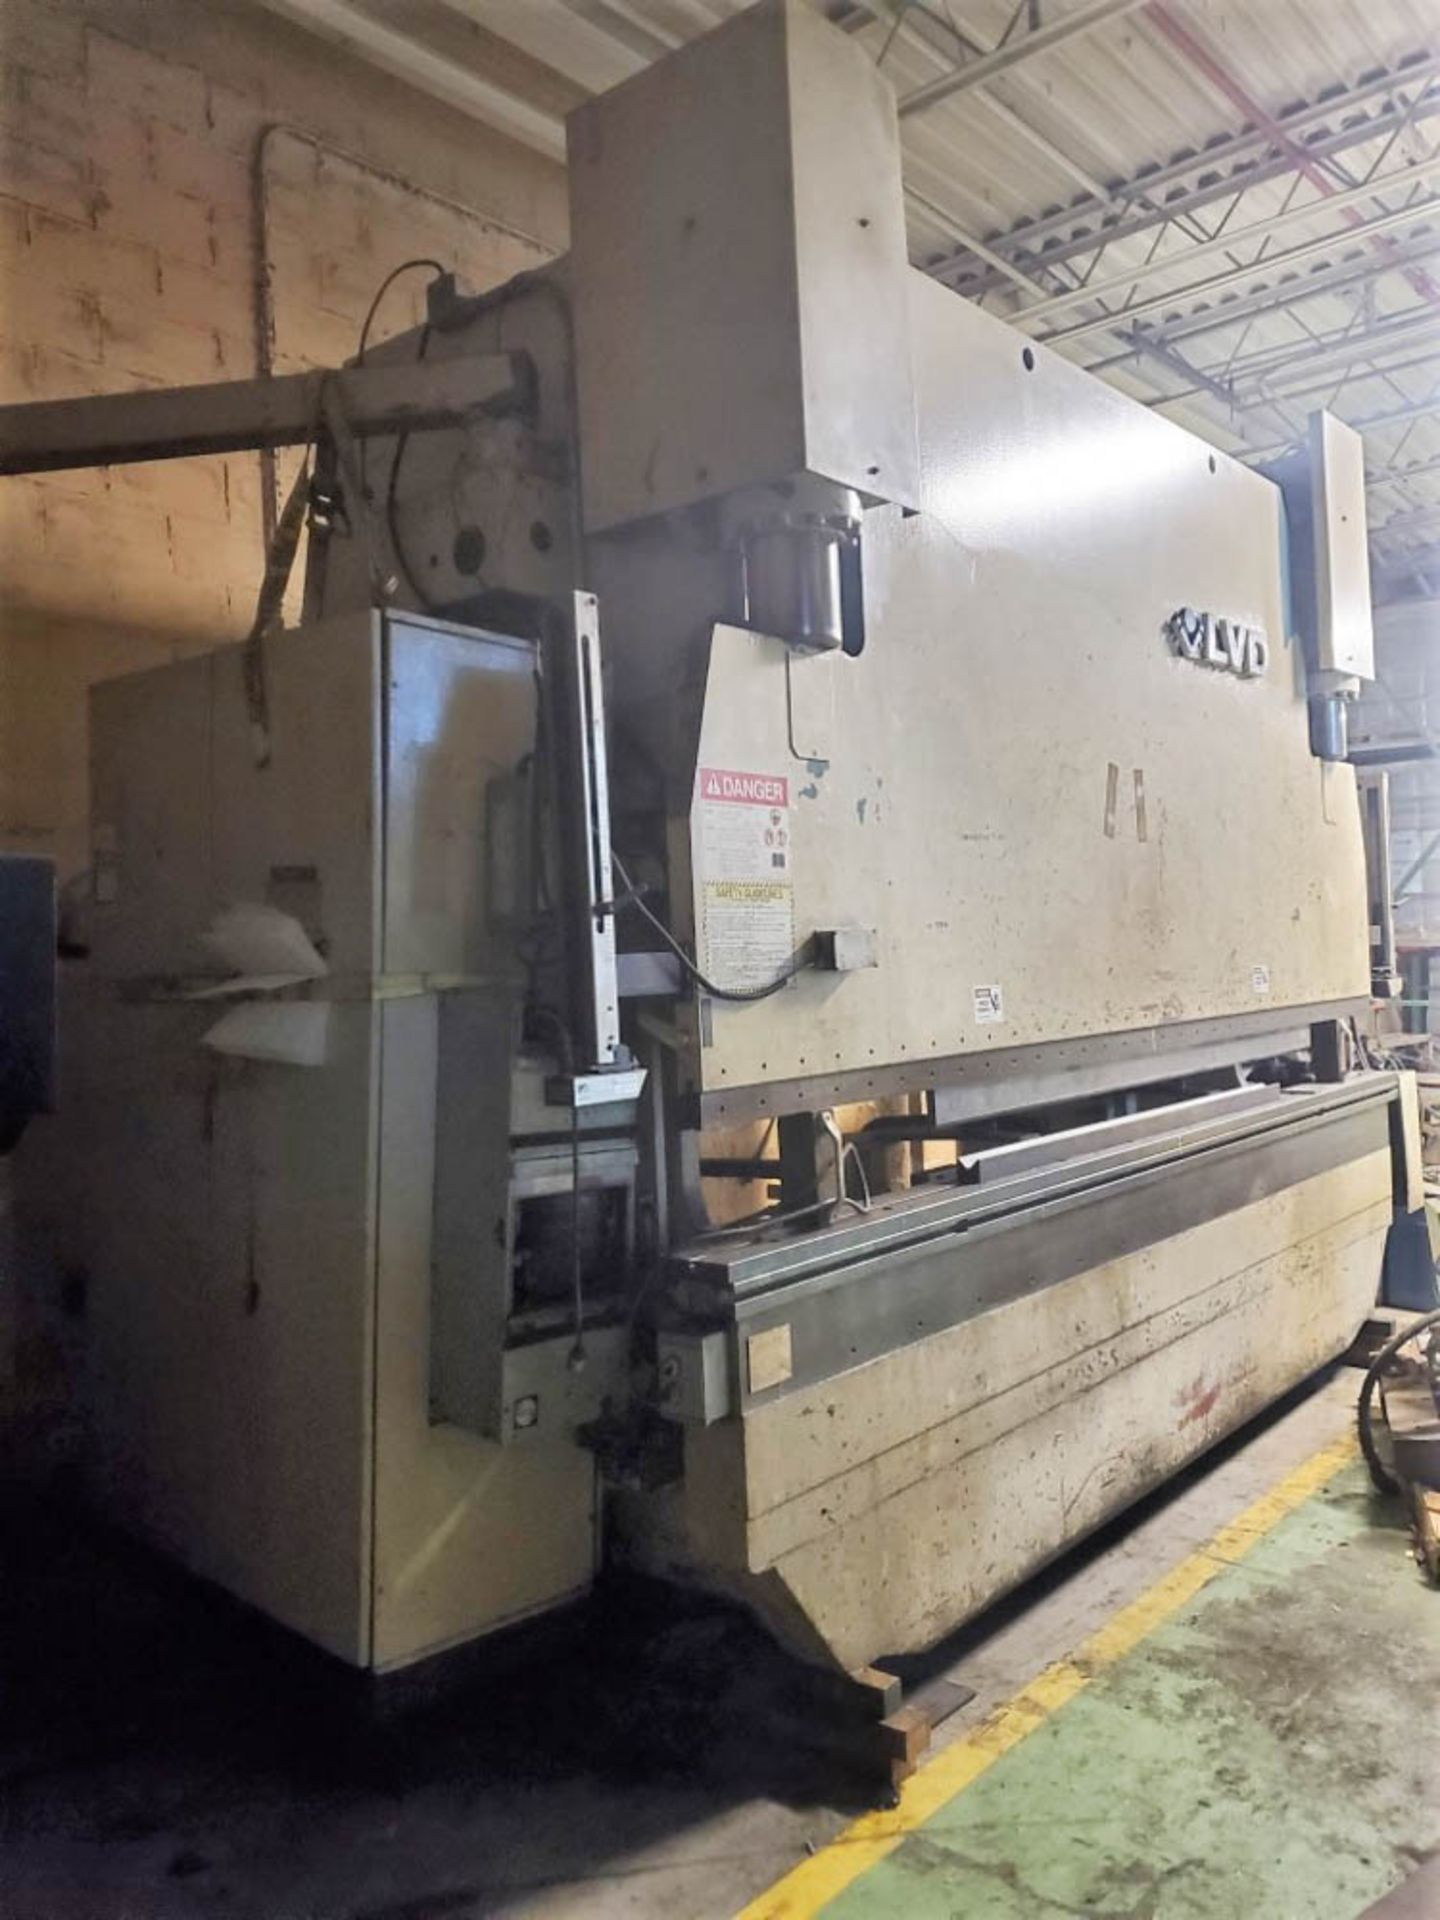 """1993 LVD PPEB160-40 160 TON X 161"""" CNC BRAKE(located in Markle,Indiana), MNC85000, 124"""" BH -AS IS - Image 3 of 6"""